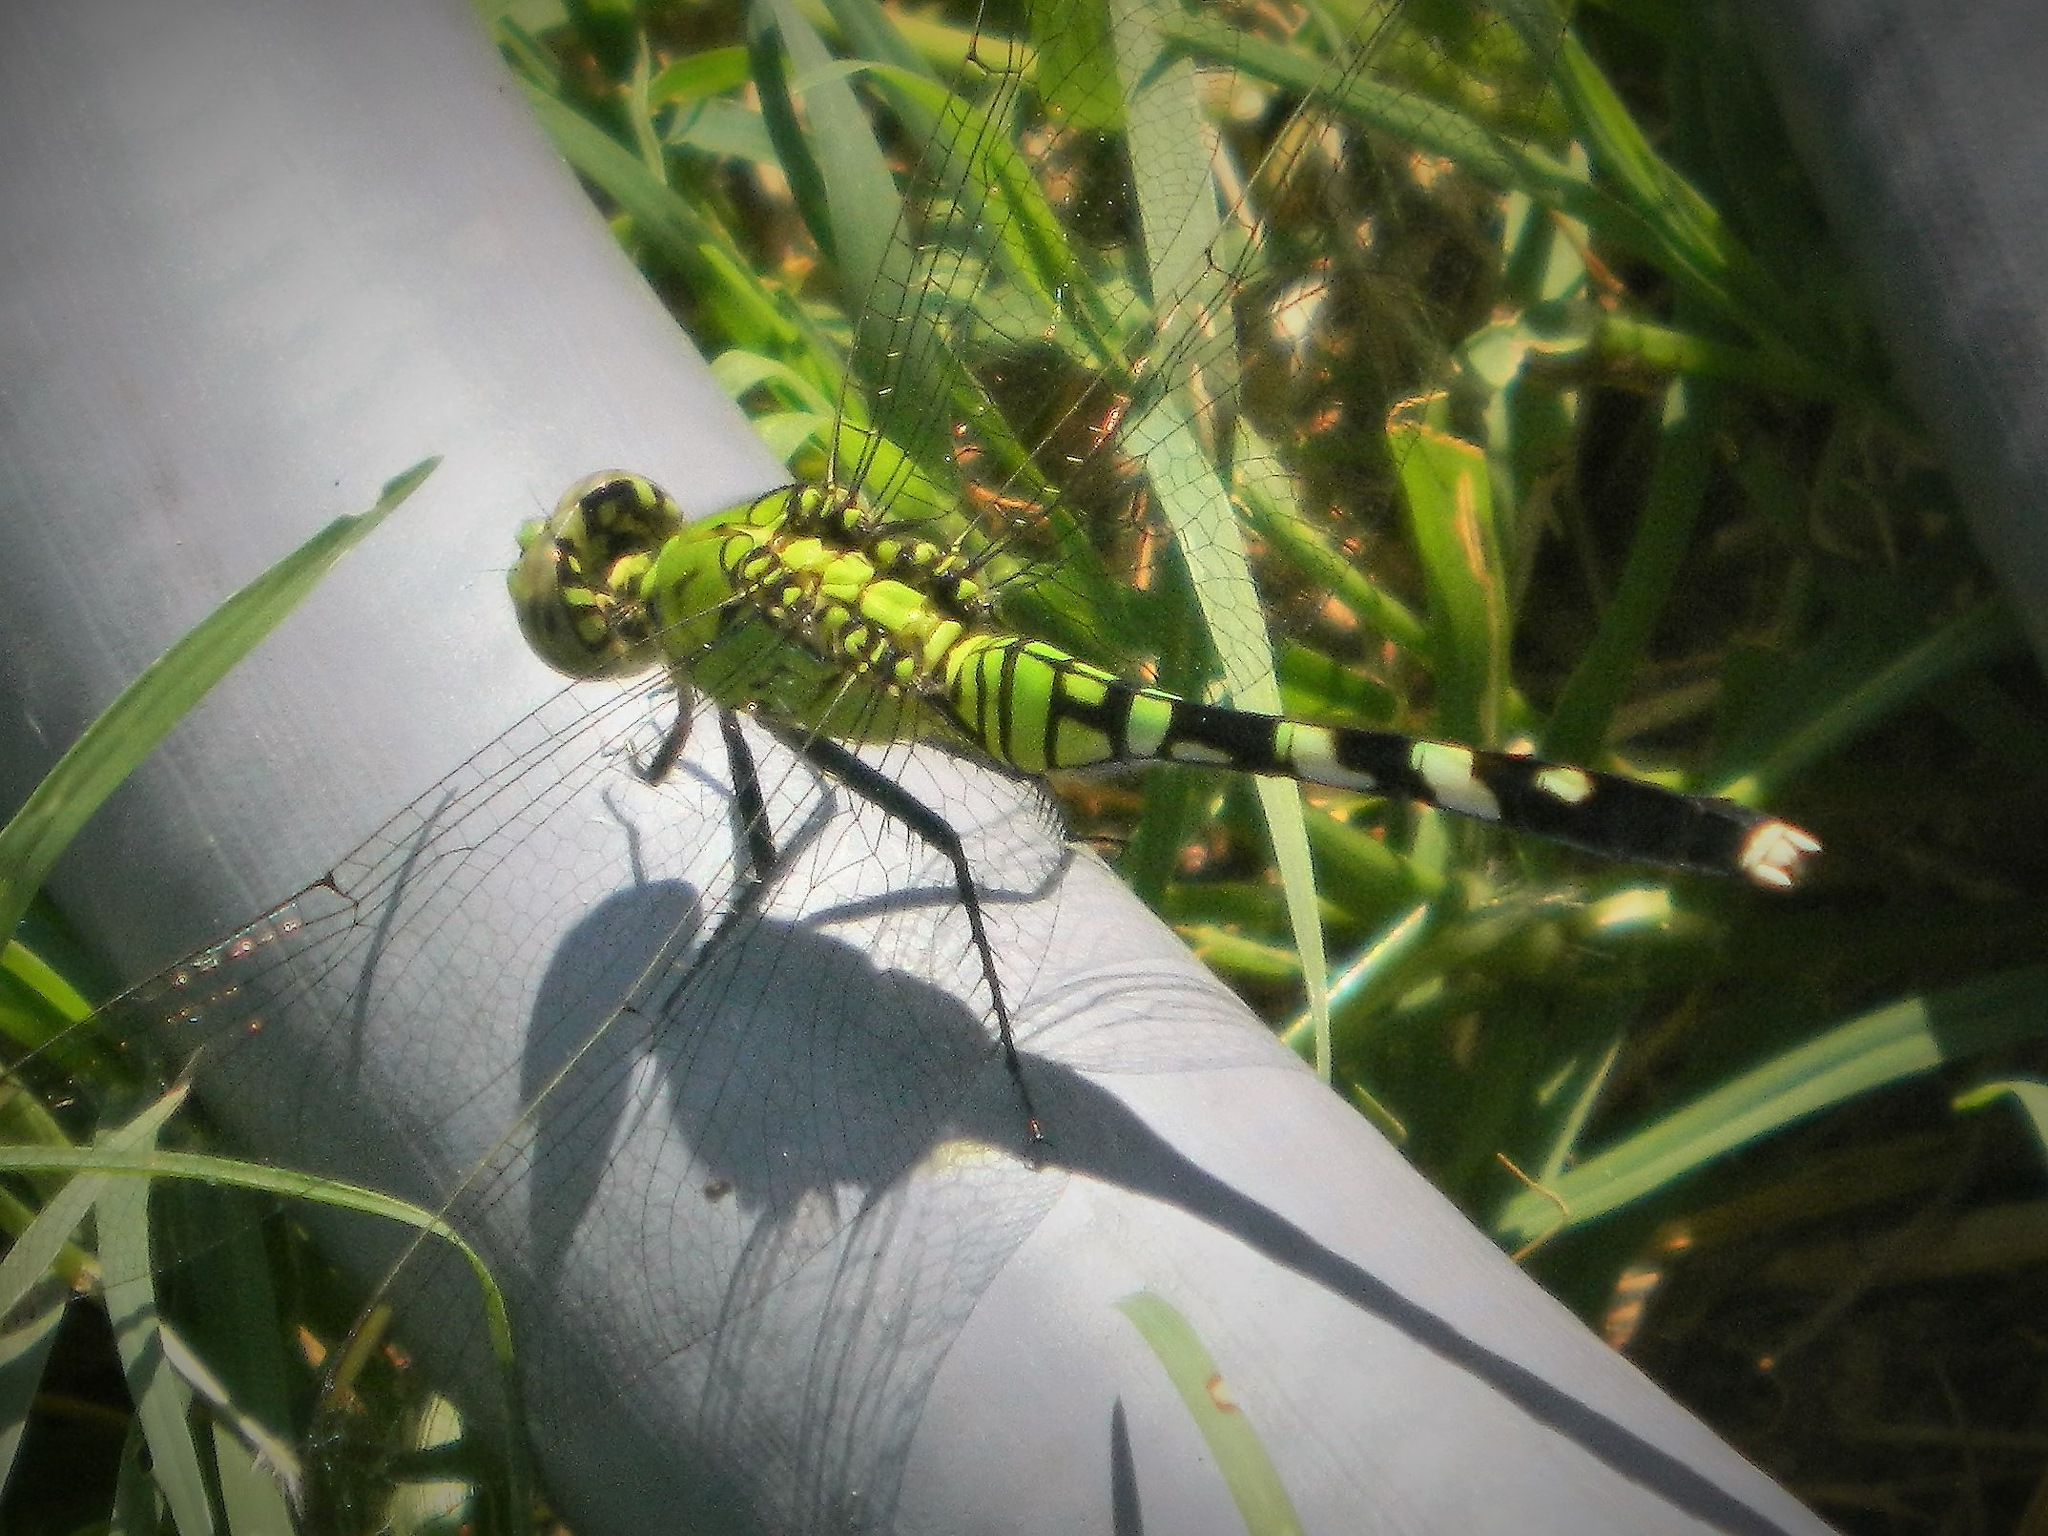 Green Dragon fly by getta.stephens